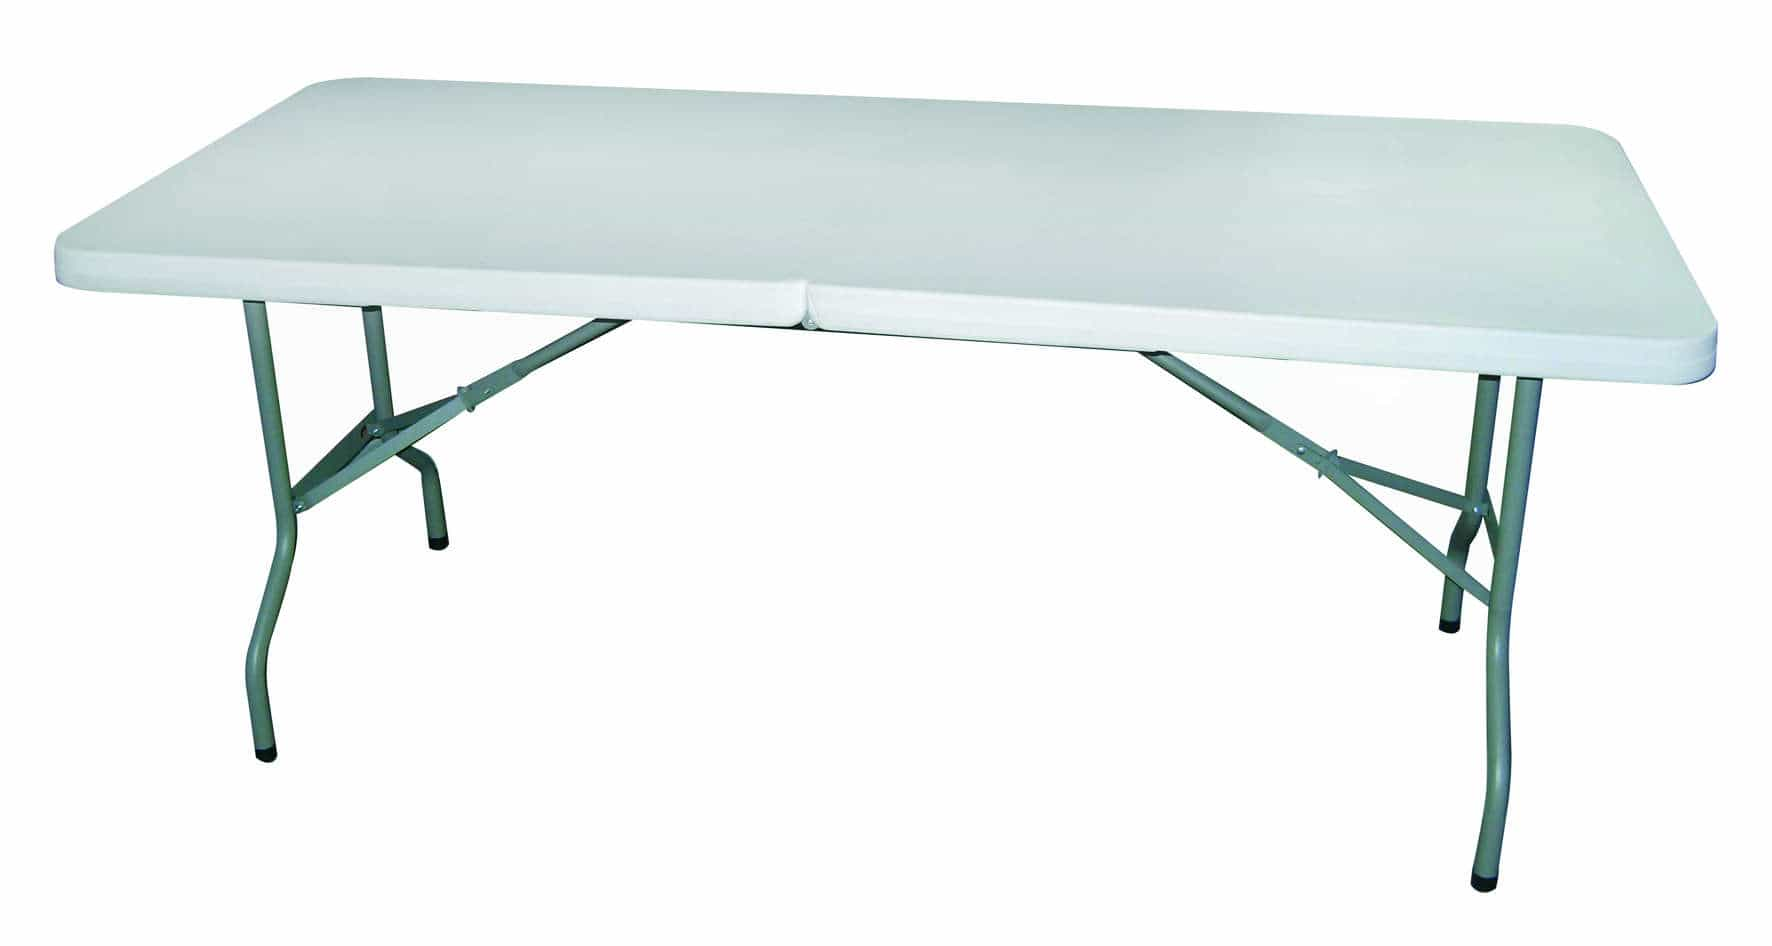 Folding Table made of heavy duty plastic. Easy assembled & sturdy.